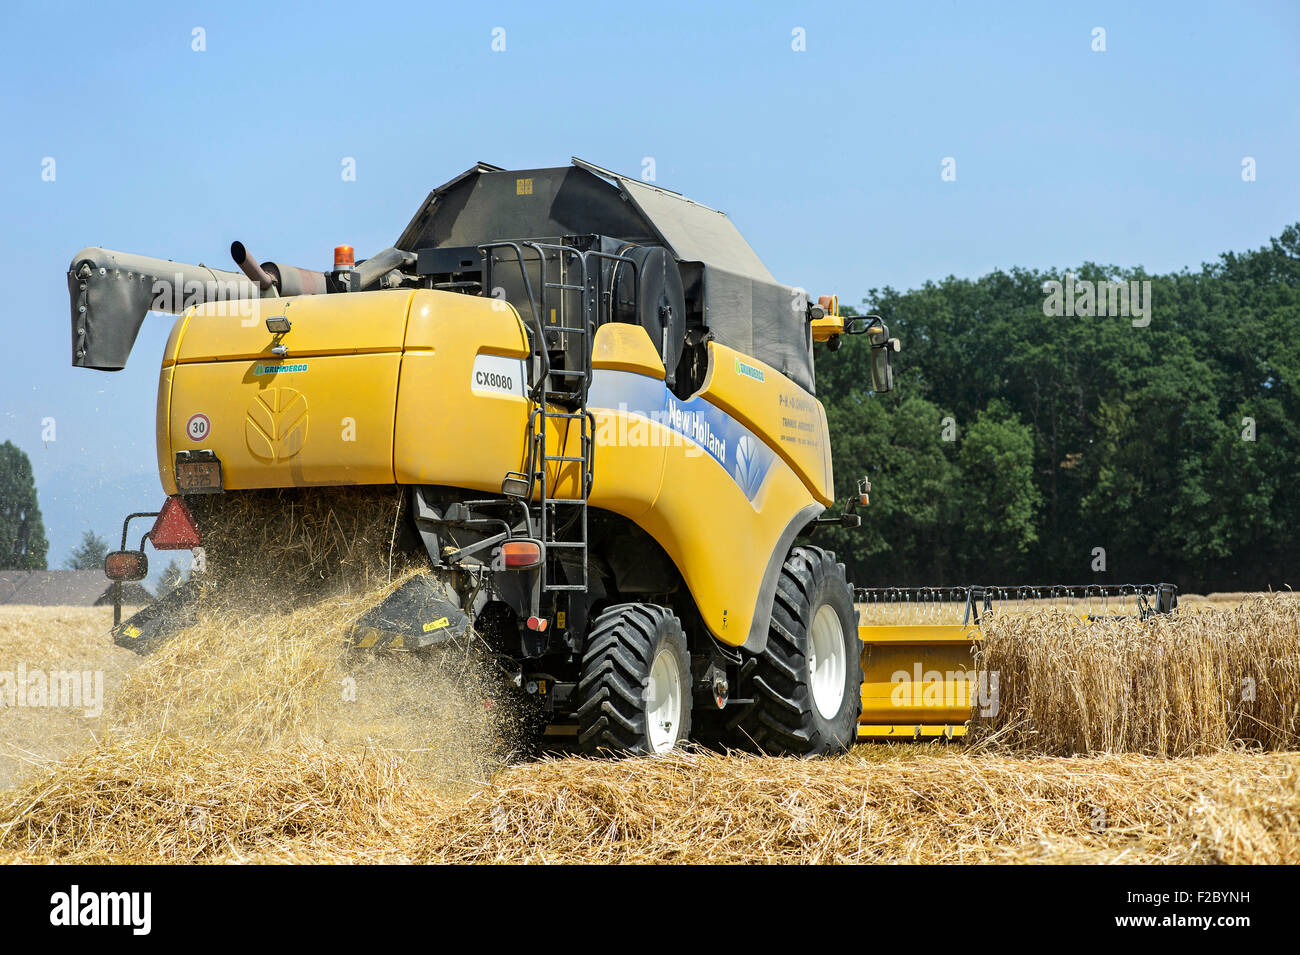 New Holland CX8080, combine harvester, harvesting winter wheat, Canton of Geneva, Switzerland - Stock Image